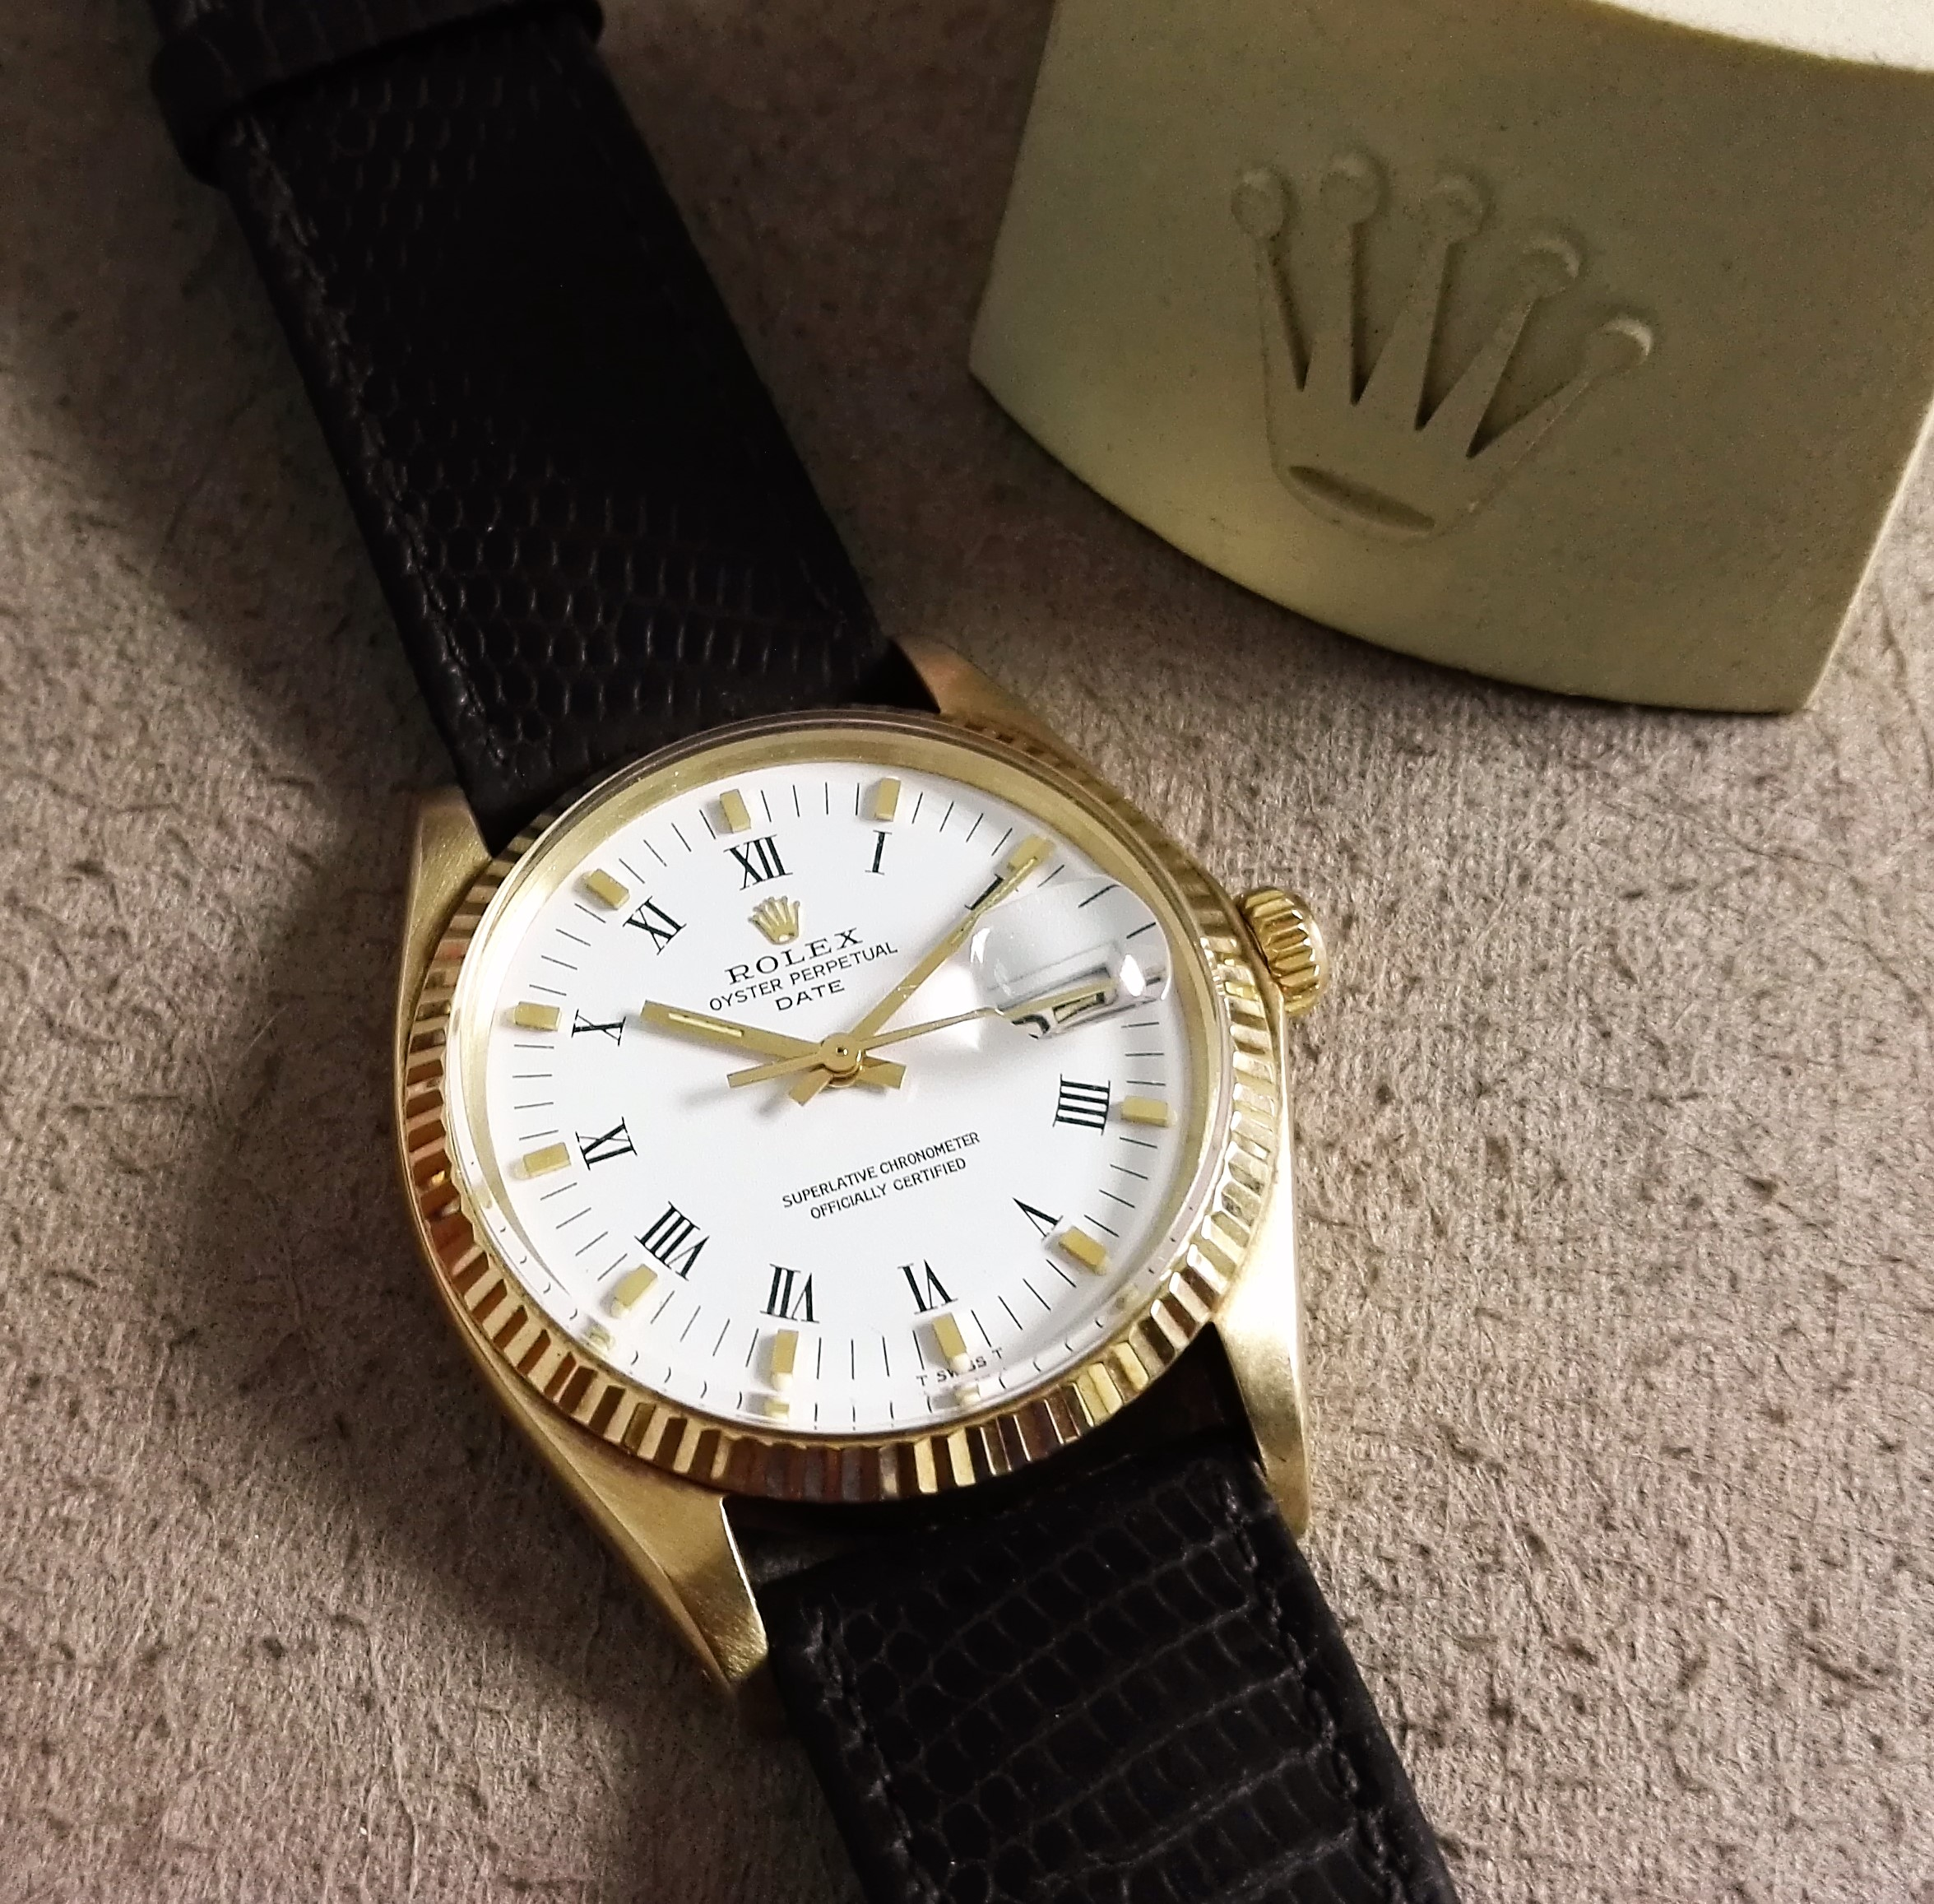 Rolex Oyster Perpetual Date Rare Oyster Perpetual Date 1500/1503 yellow gold 14 kt | San Giorgio a Cremano